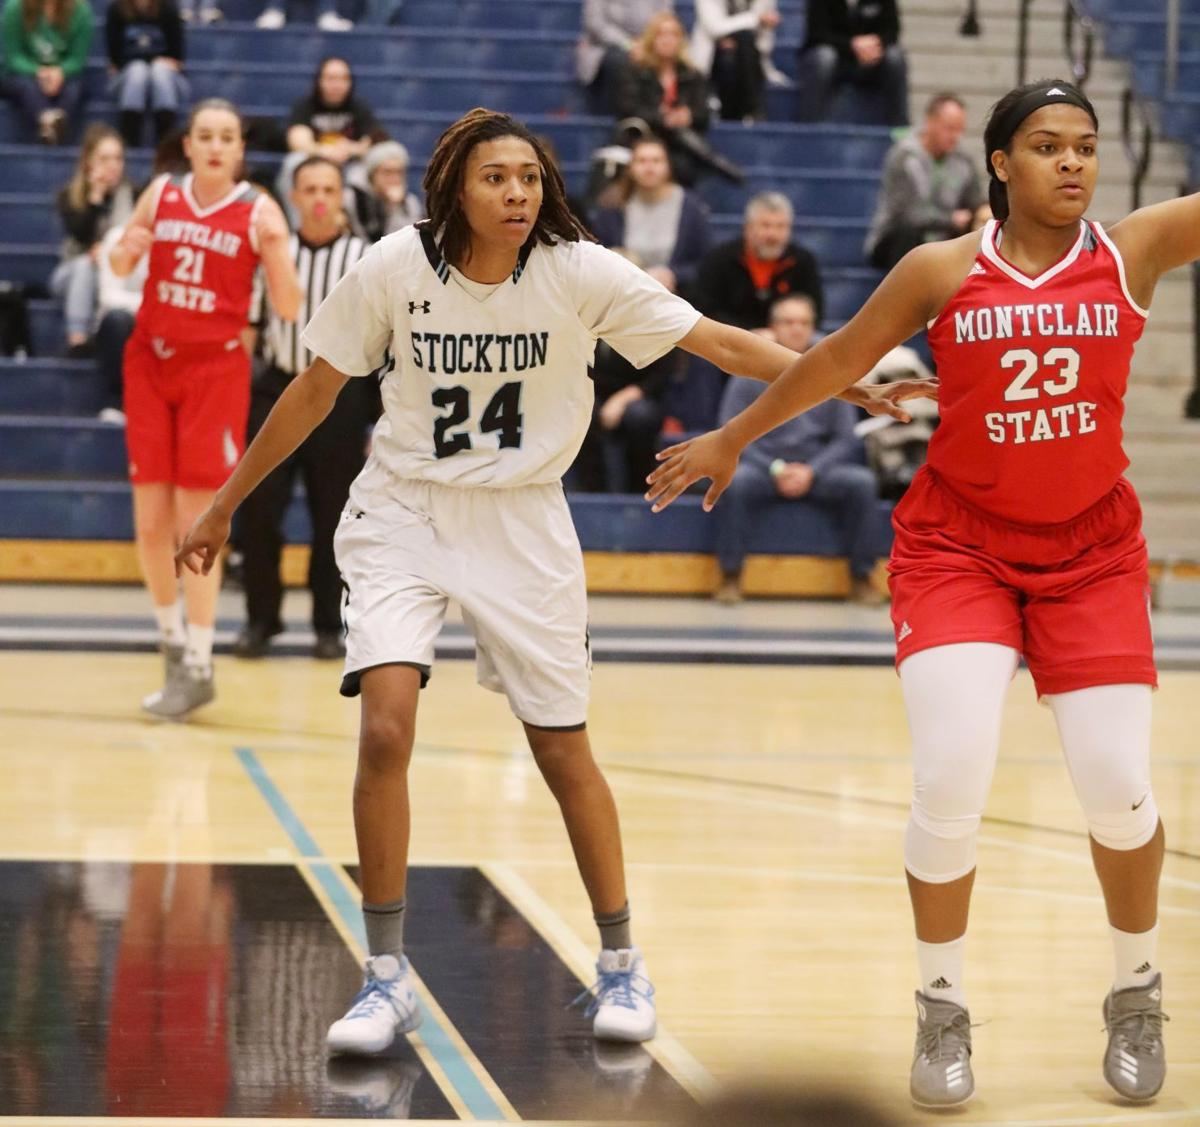 Sasha Williams, Stockton University women's basketball